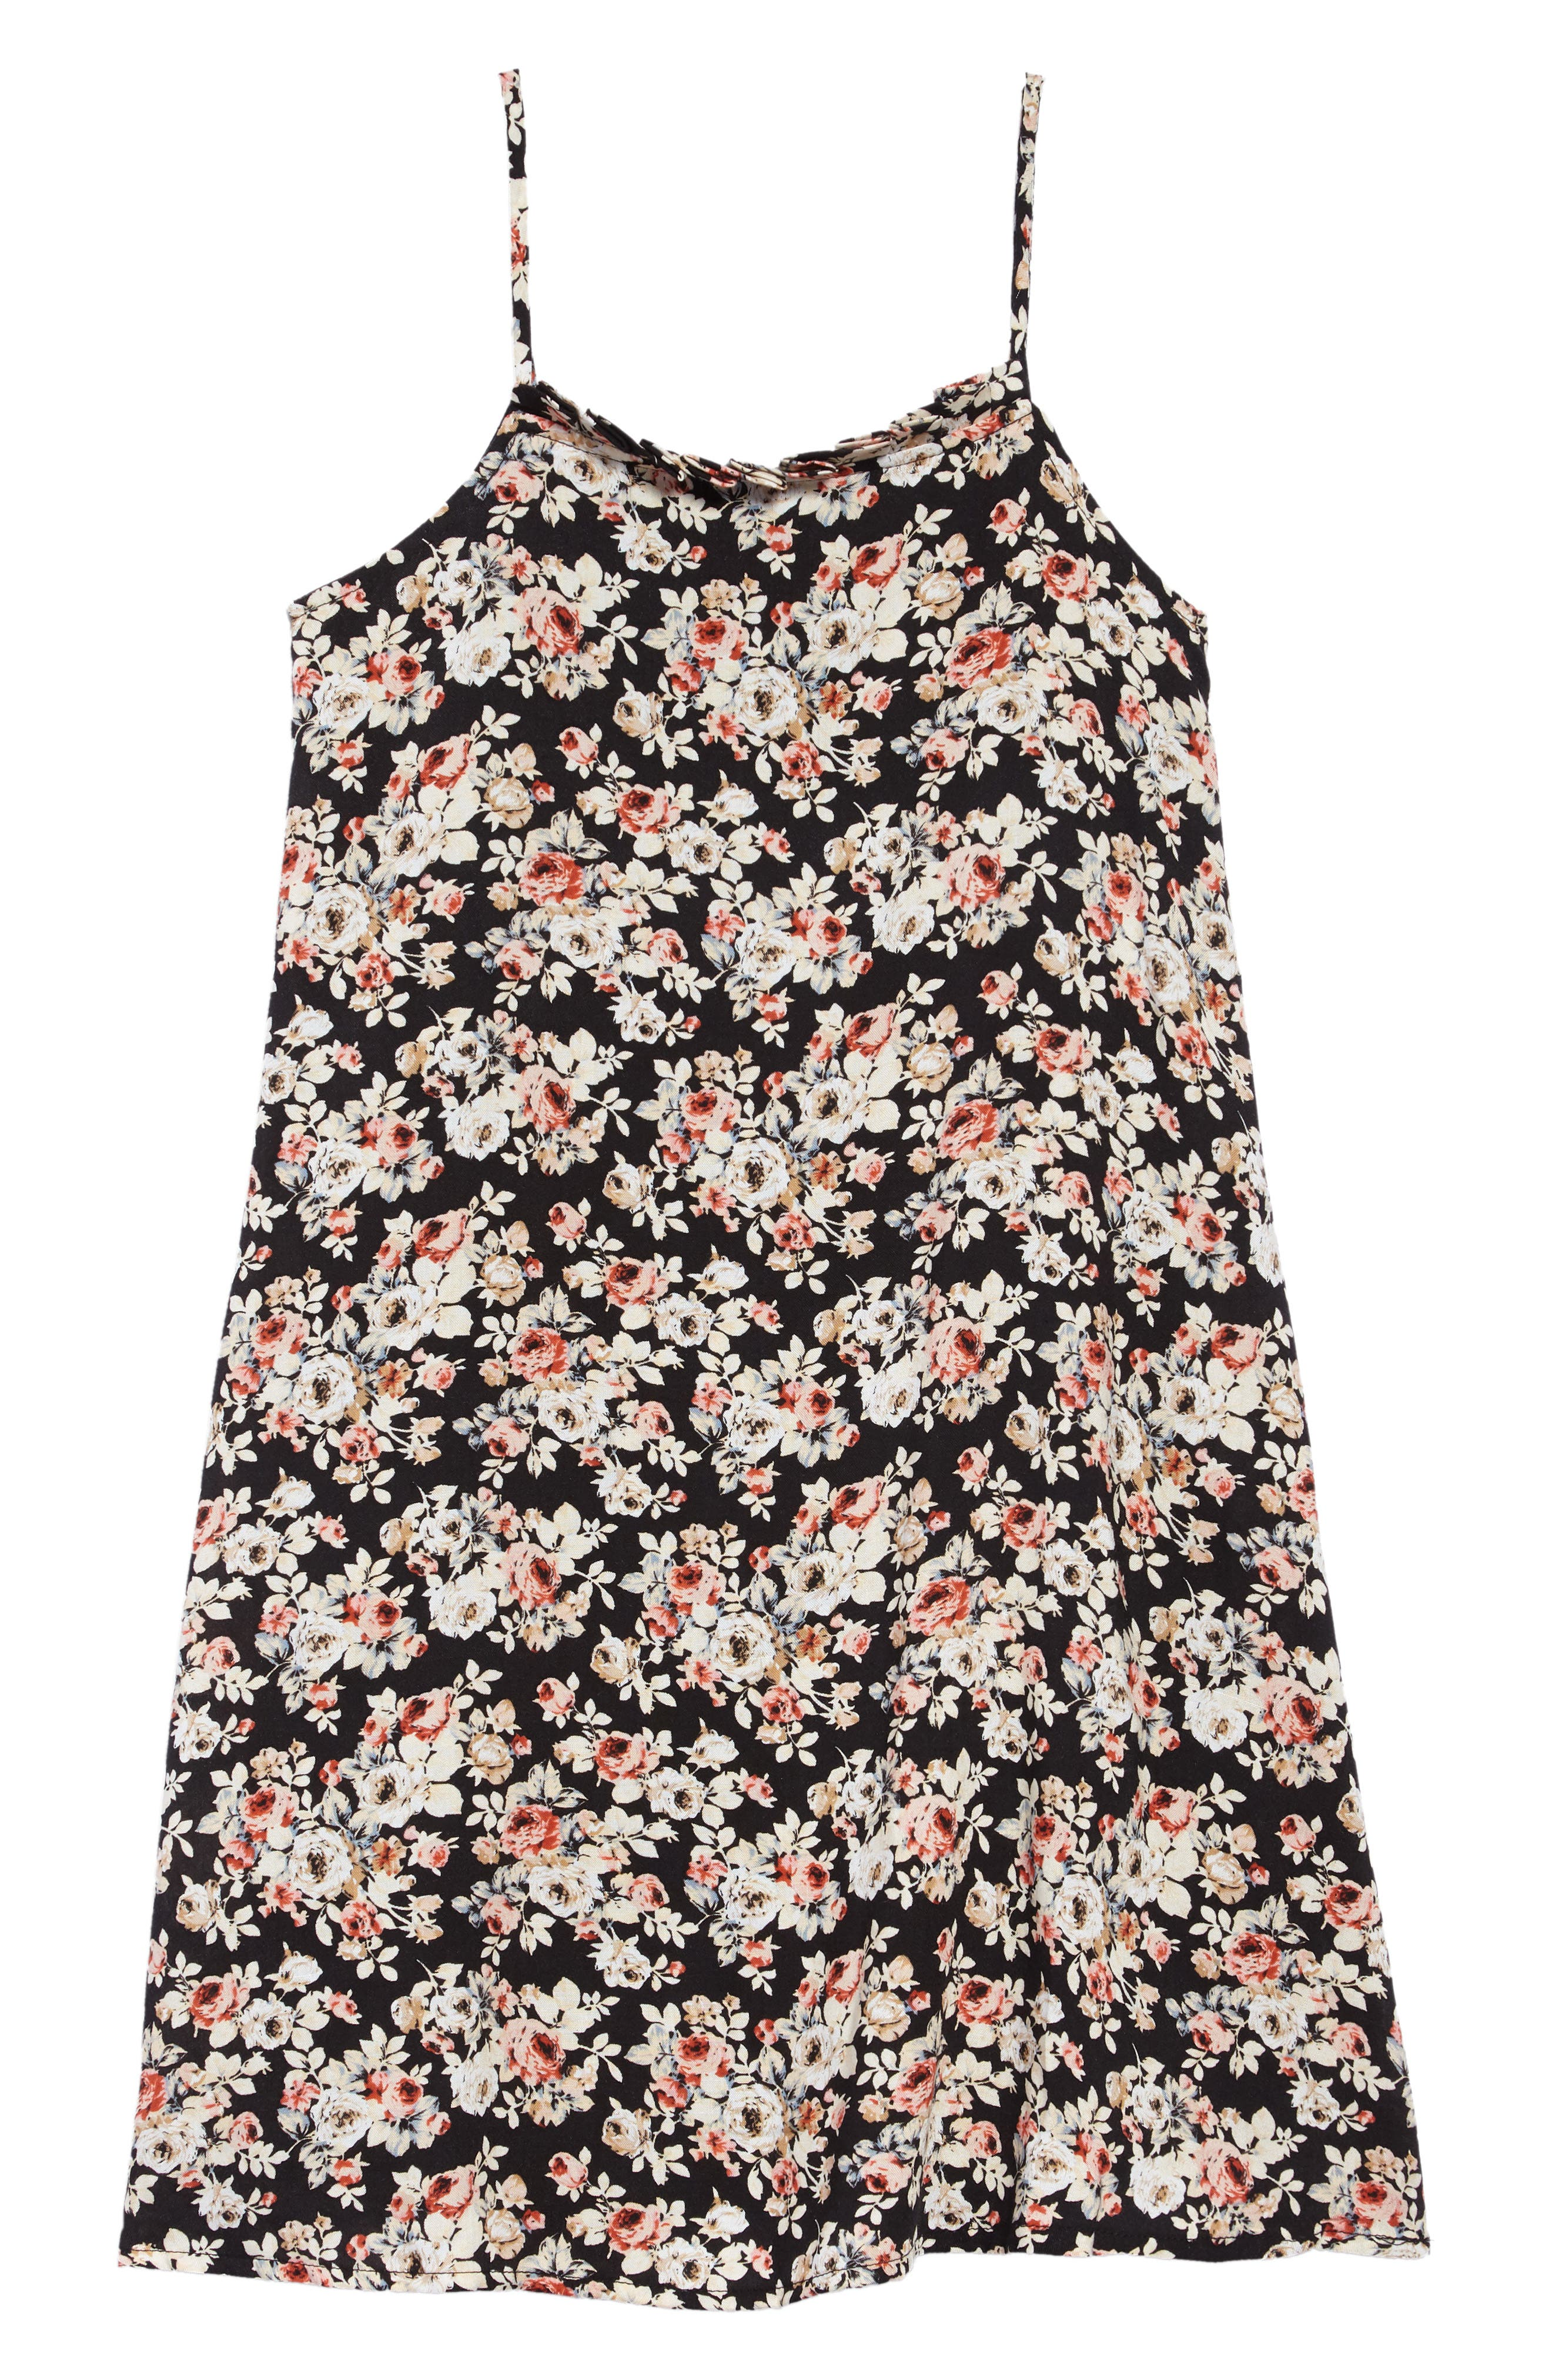 Floral Shift Dress,                         Main,                         color, Black Floral